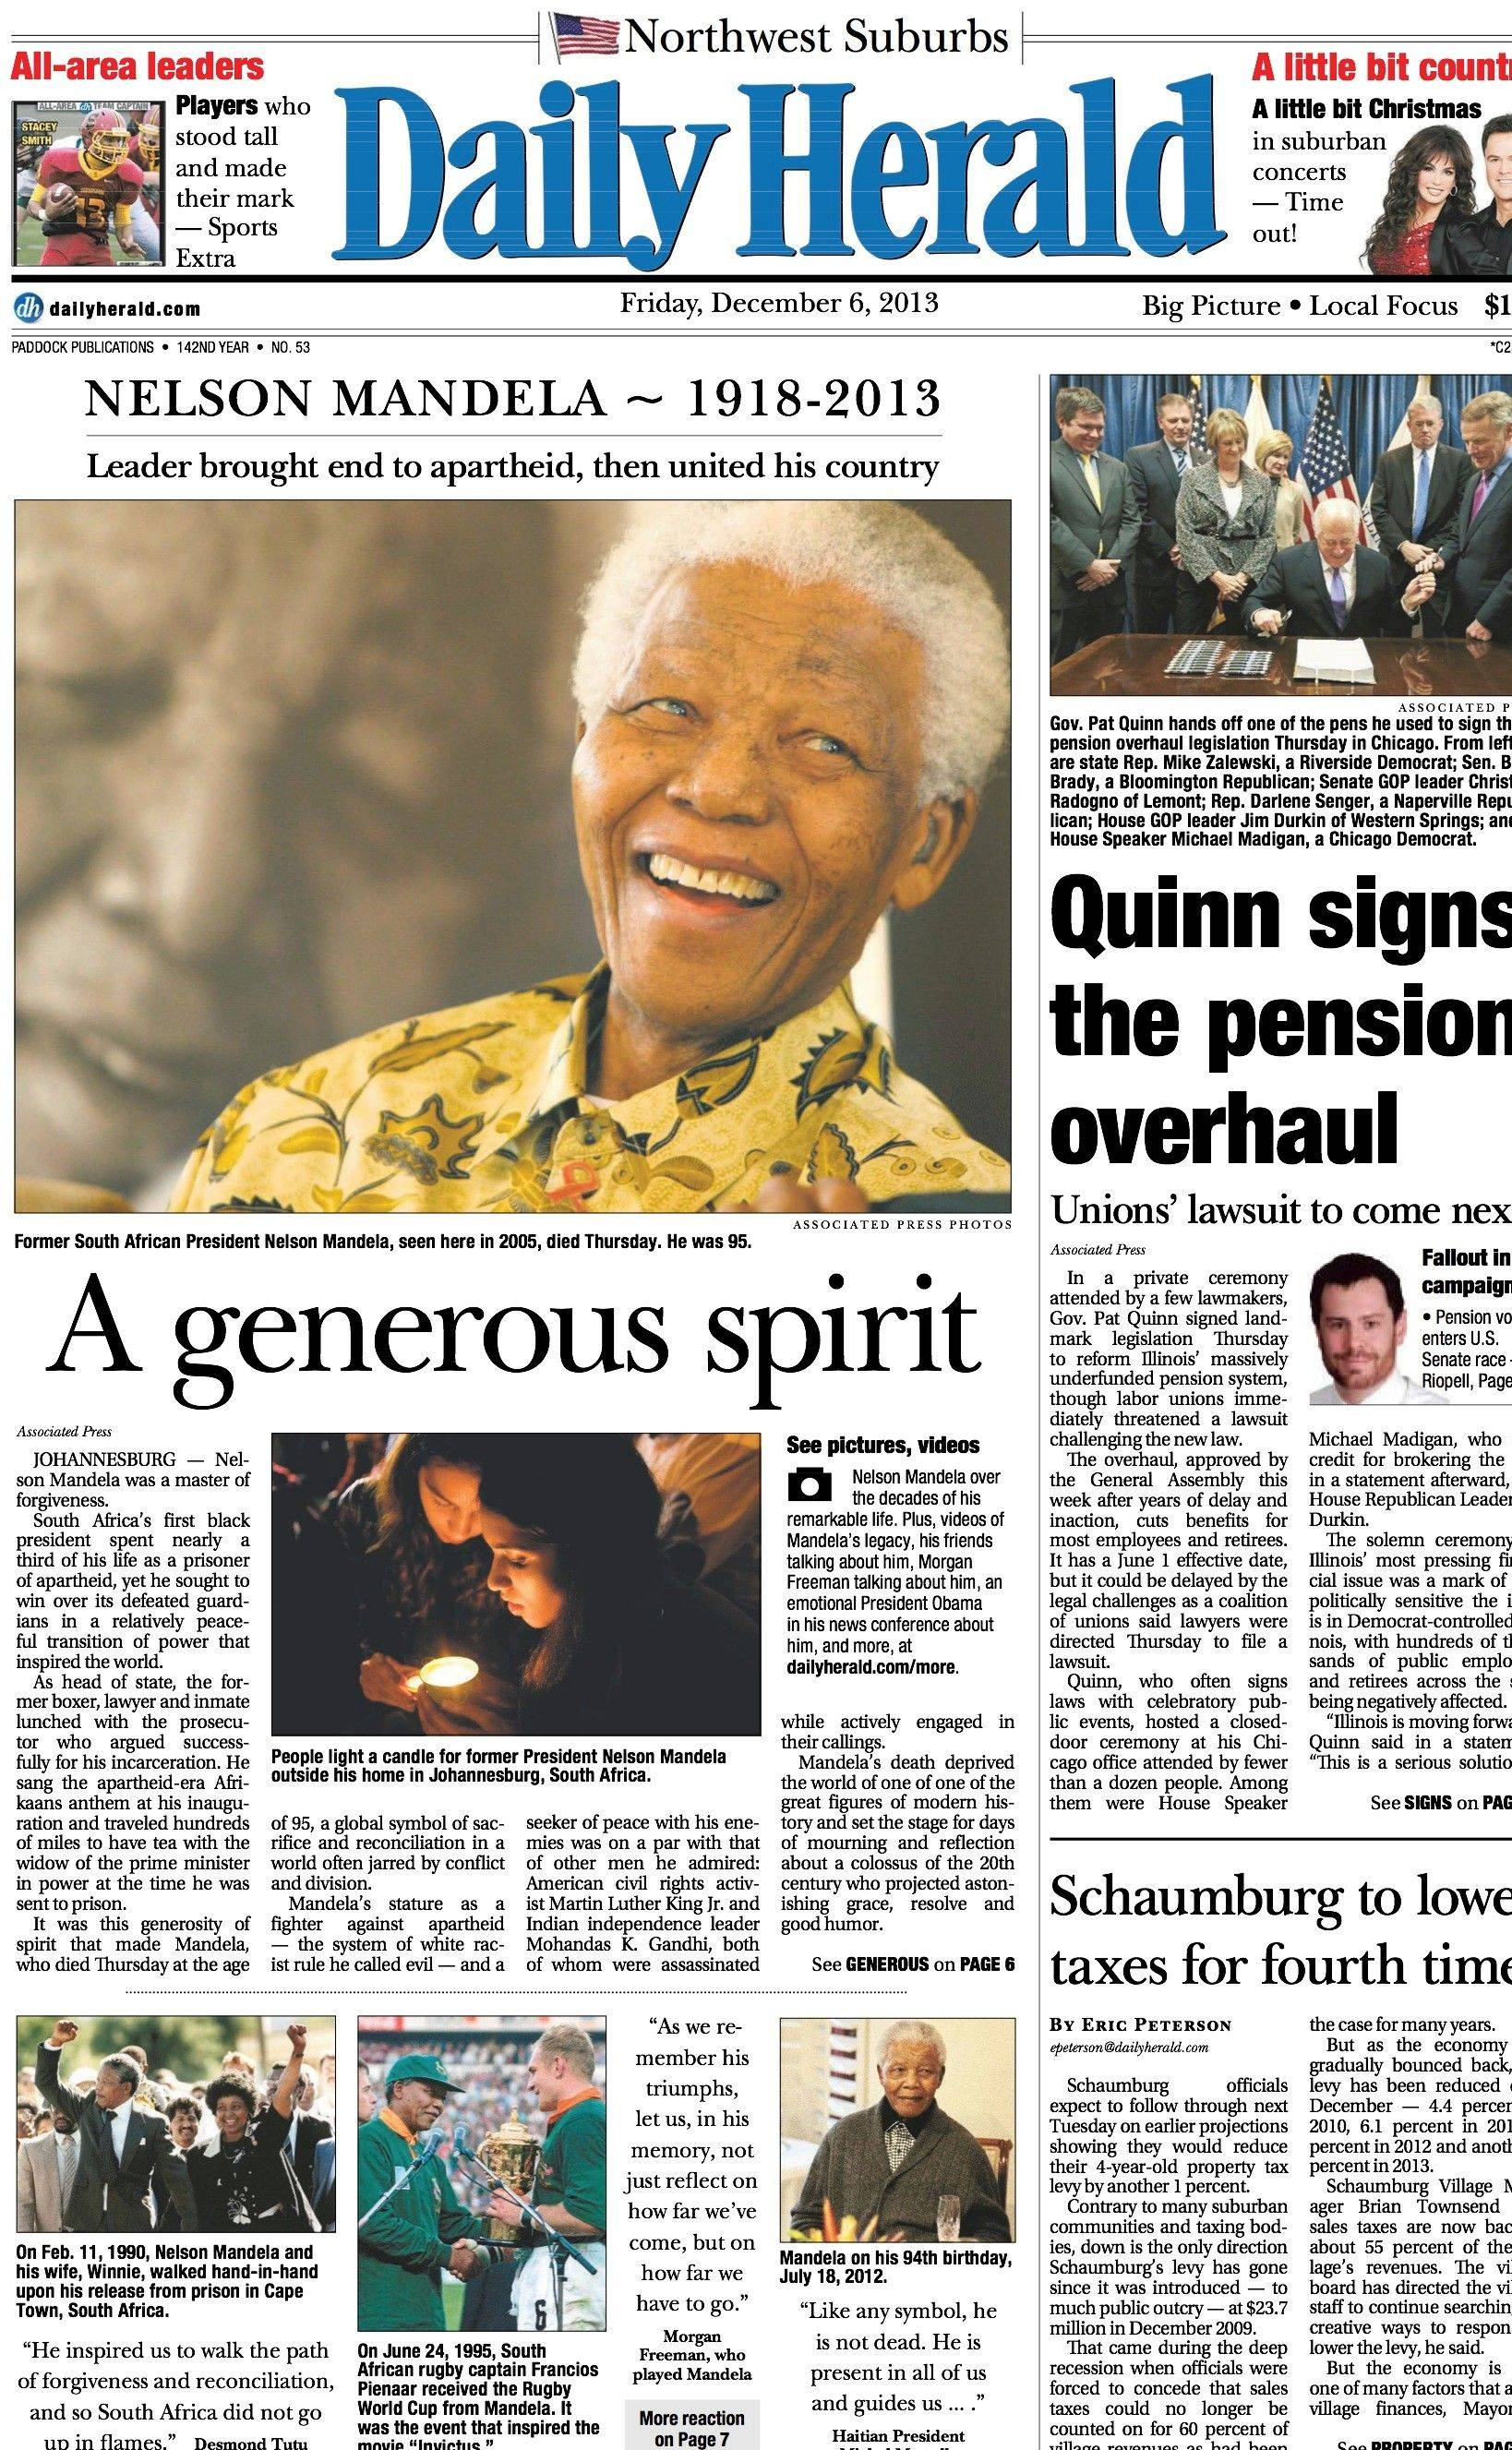 Dec. 6: South African civil rights leader Nelson Mandela passed the same day Gov. Pat Quinn signed the long-sought pension reform legislation in Illinois.